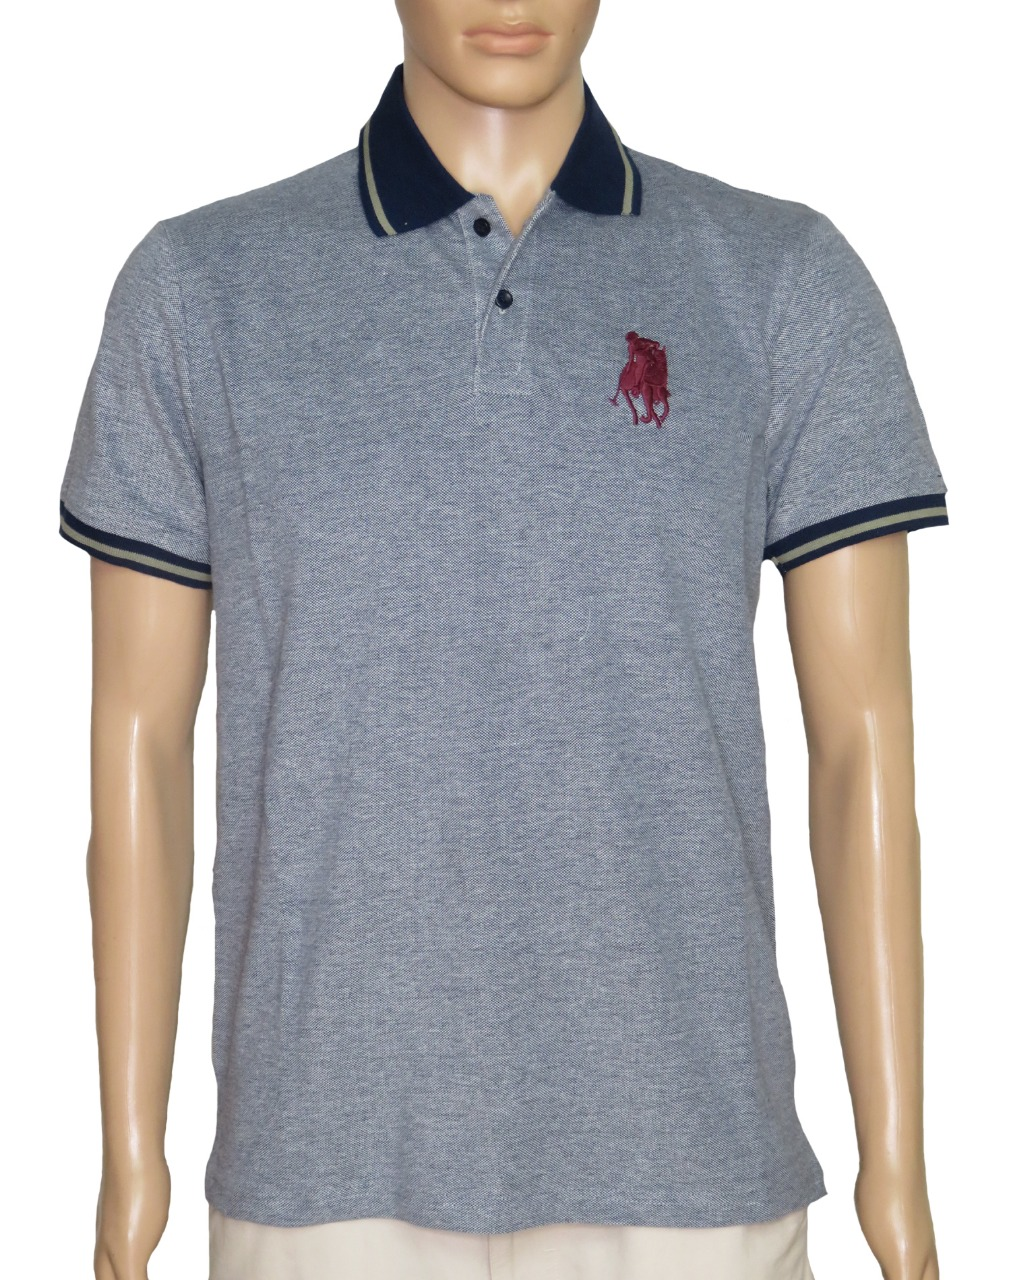 Mens Polo With Embroidery